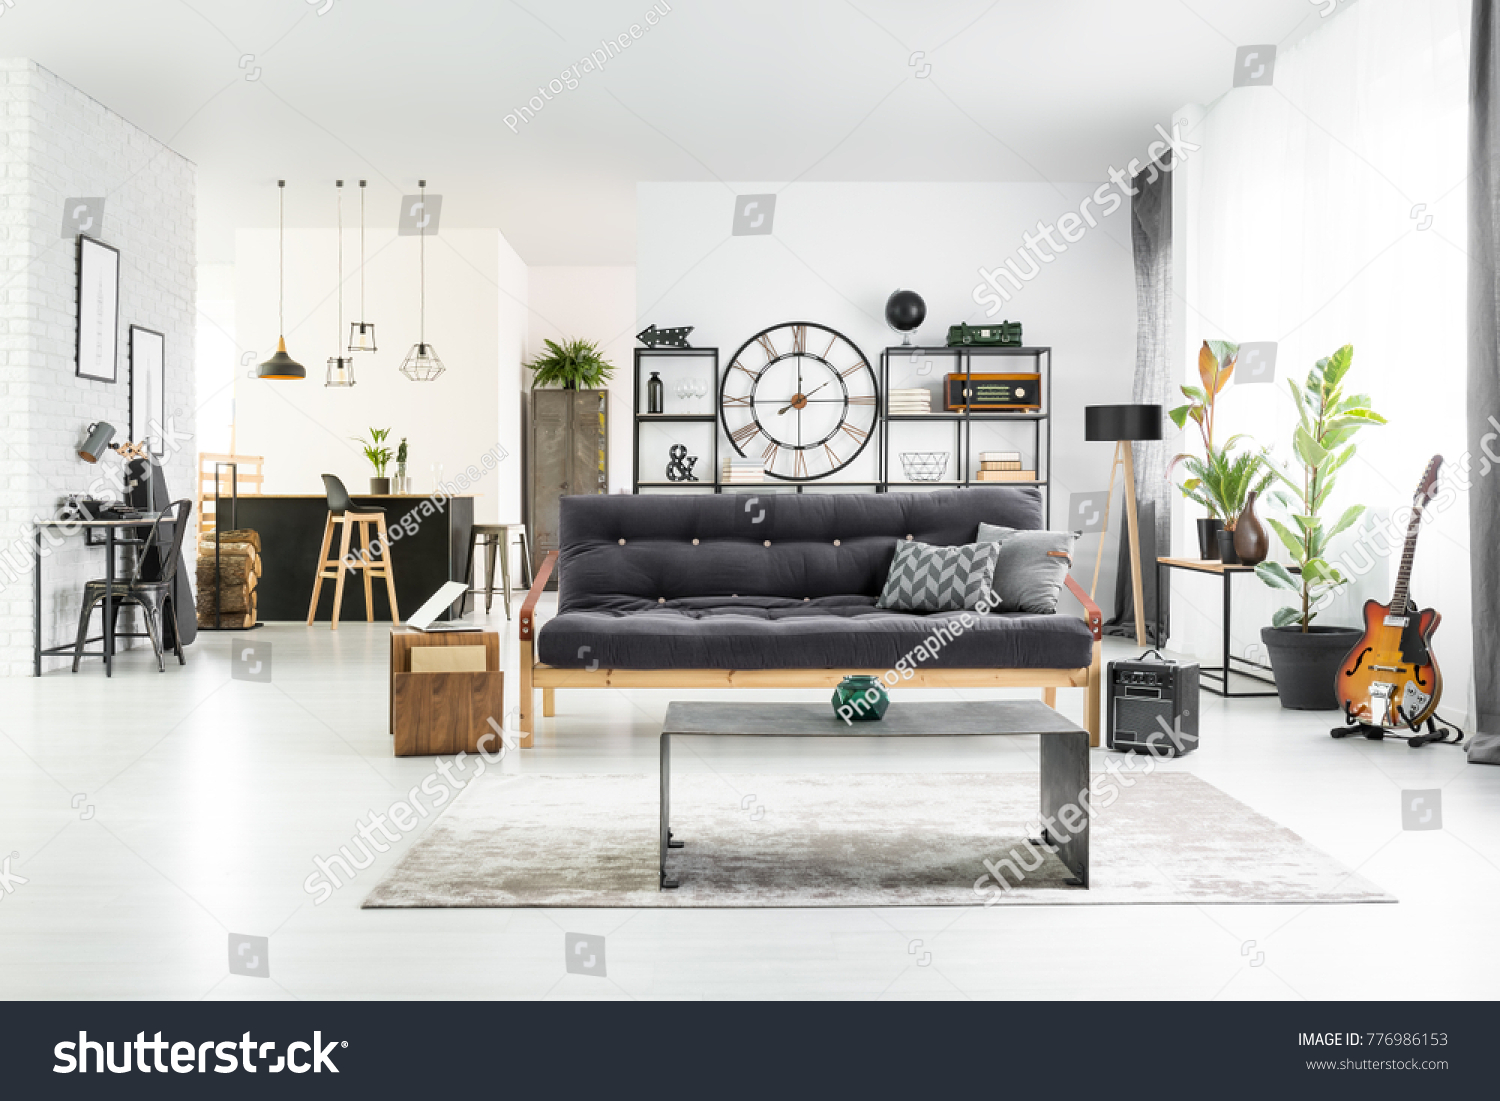 Black White Stylish Man Cave Interior Stock Photo & Image (Royalty ...